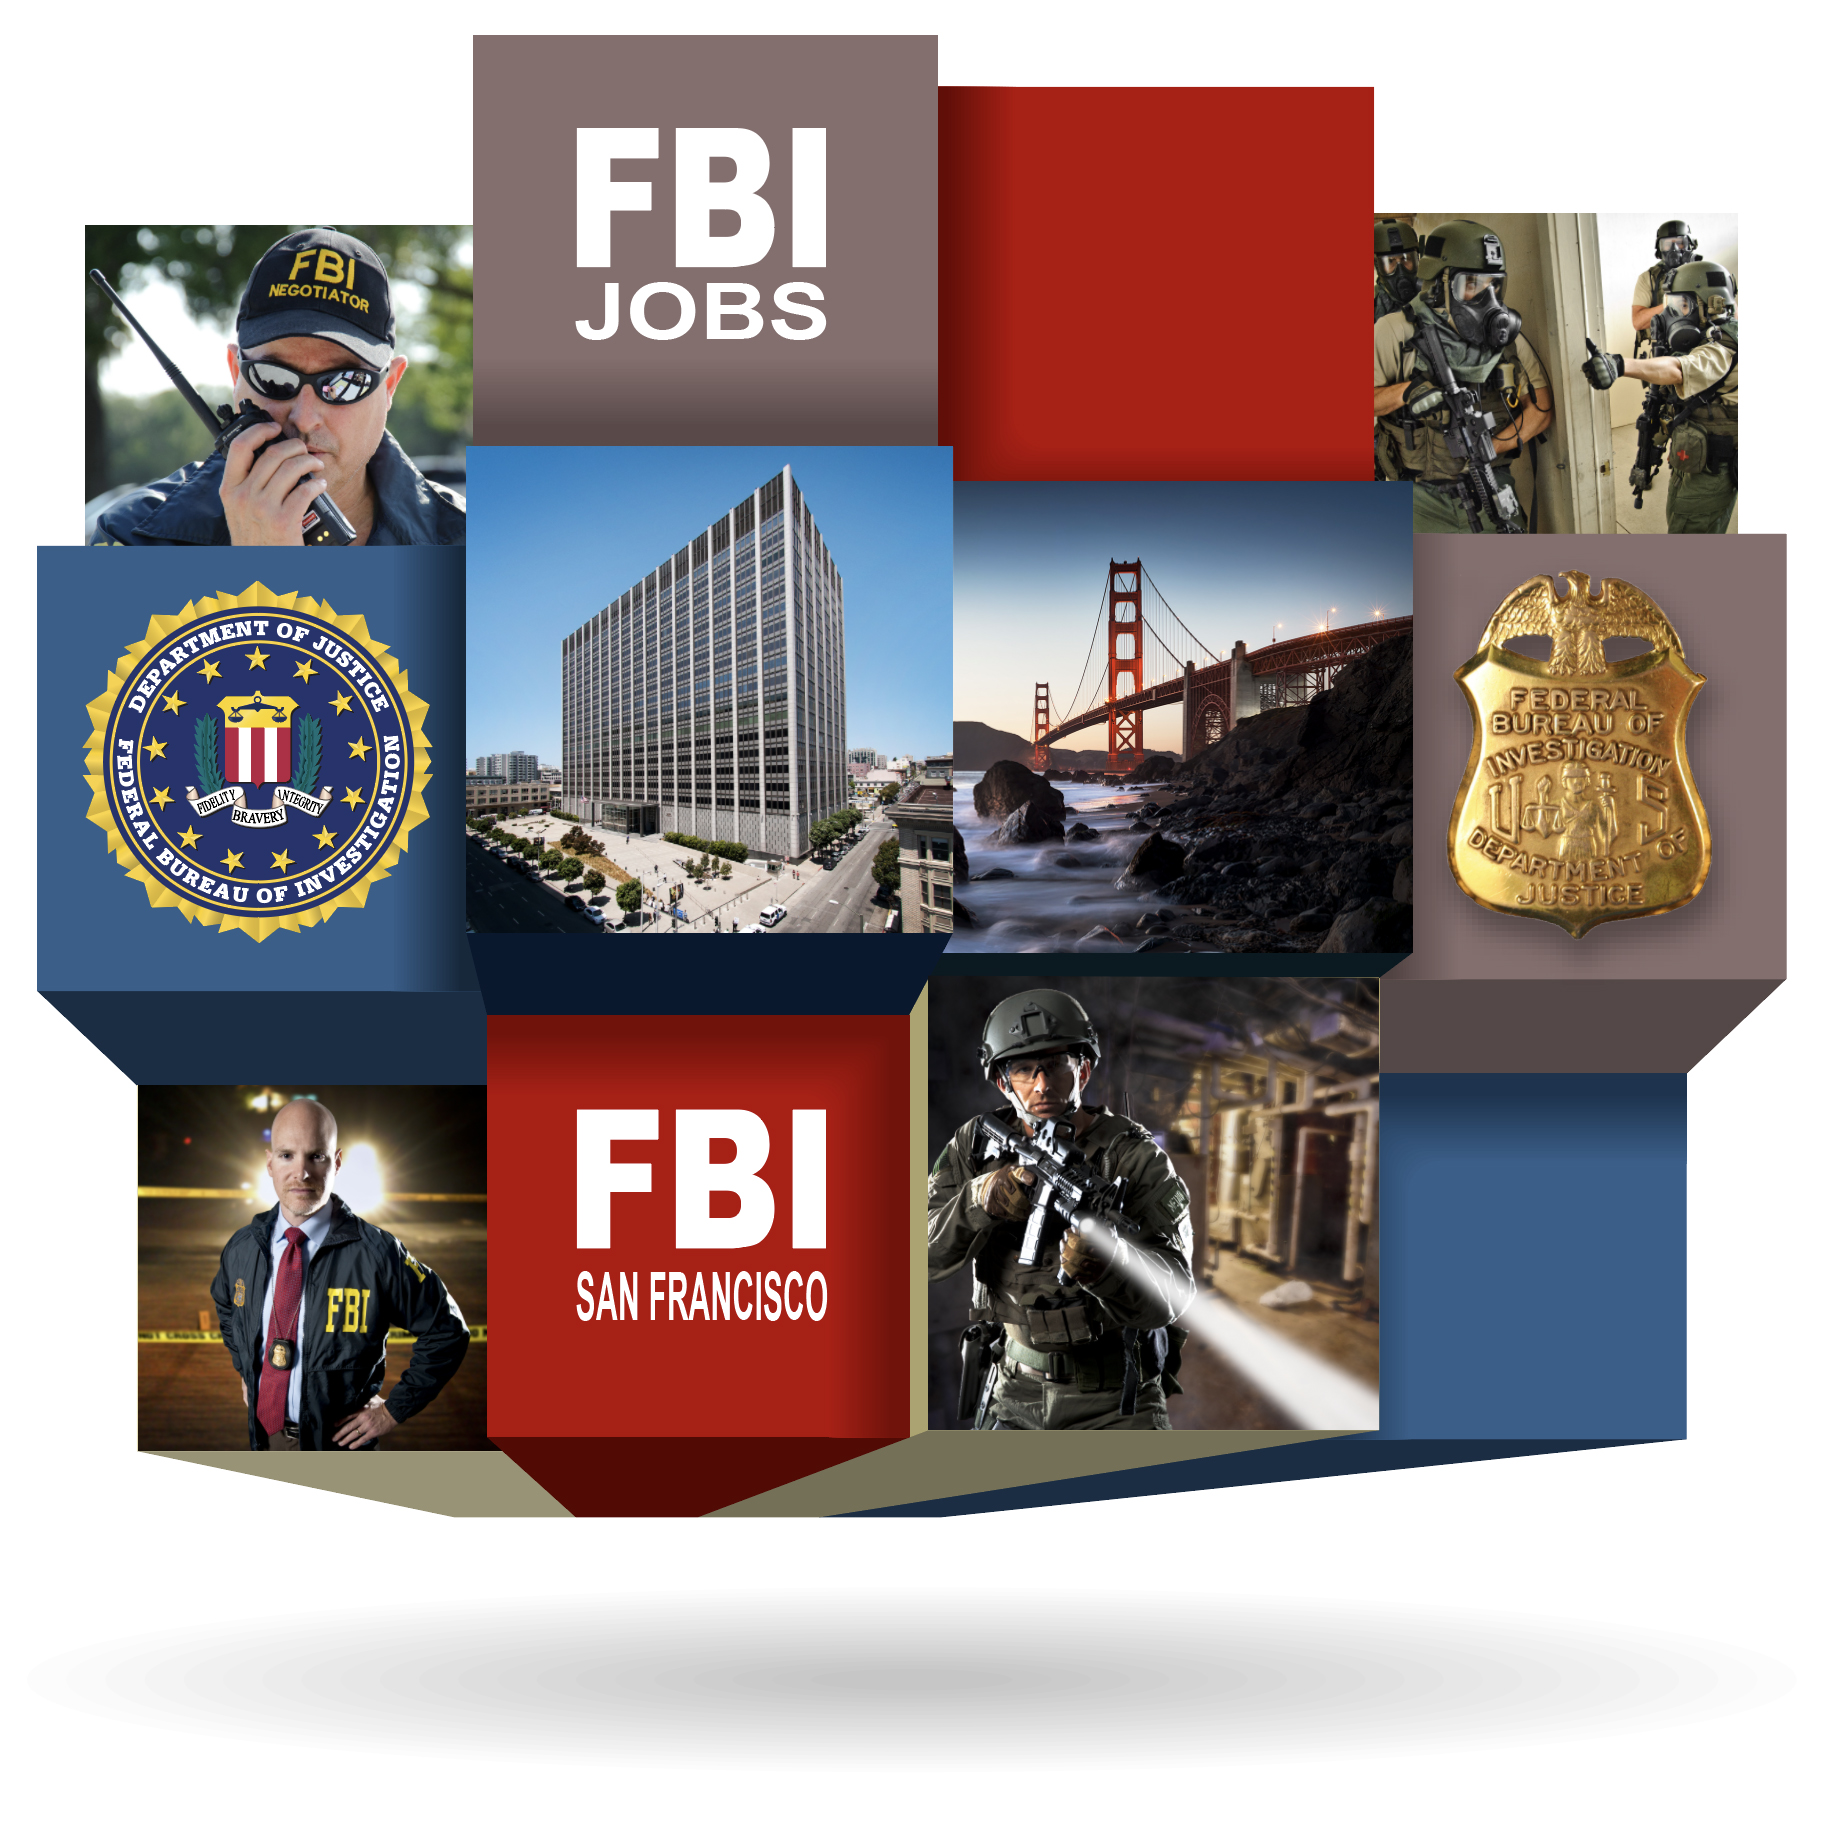 Recruitment graphic for FBI San Francisco.